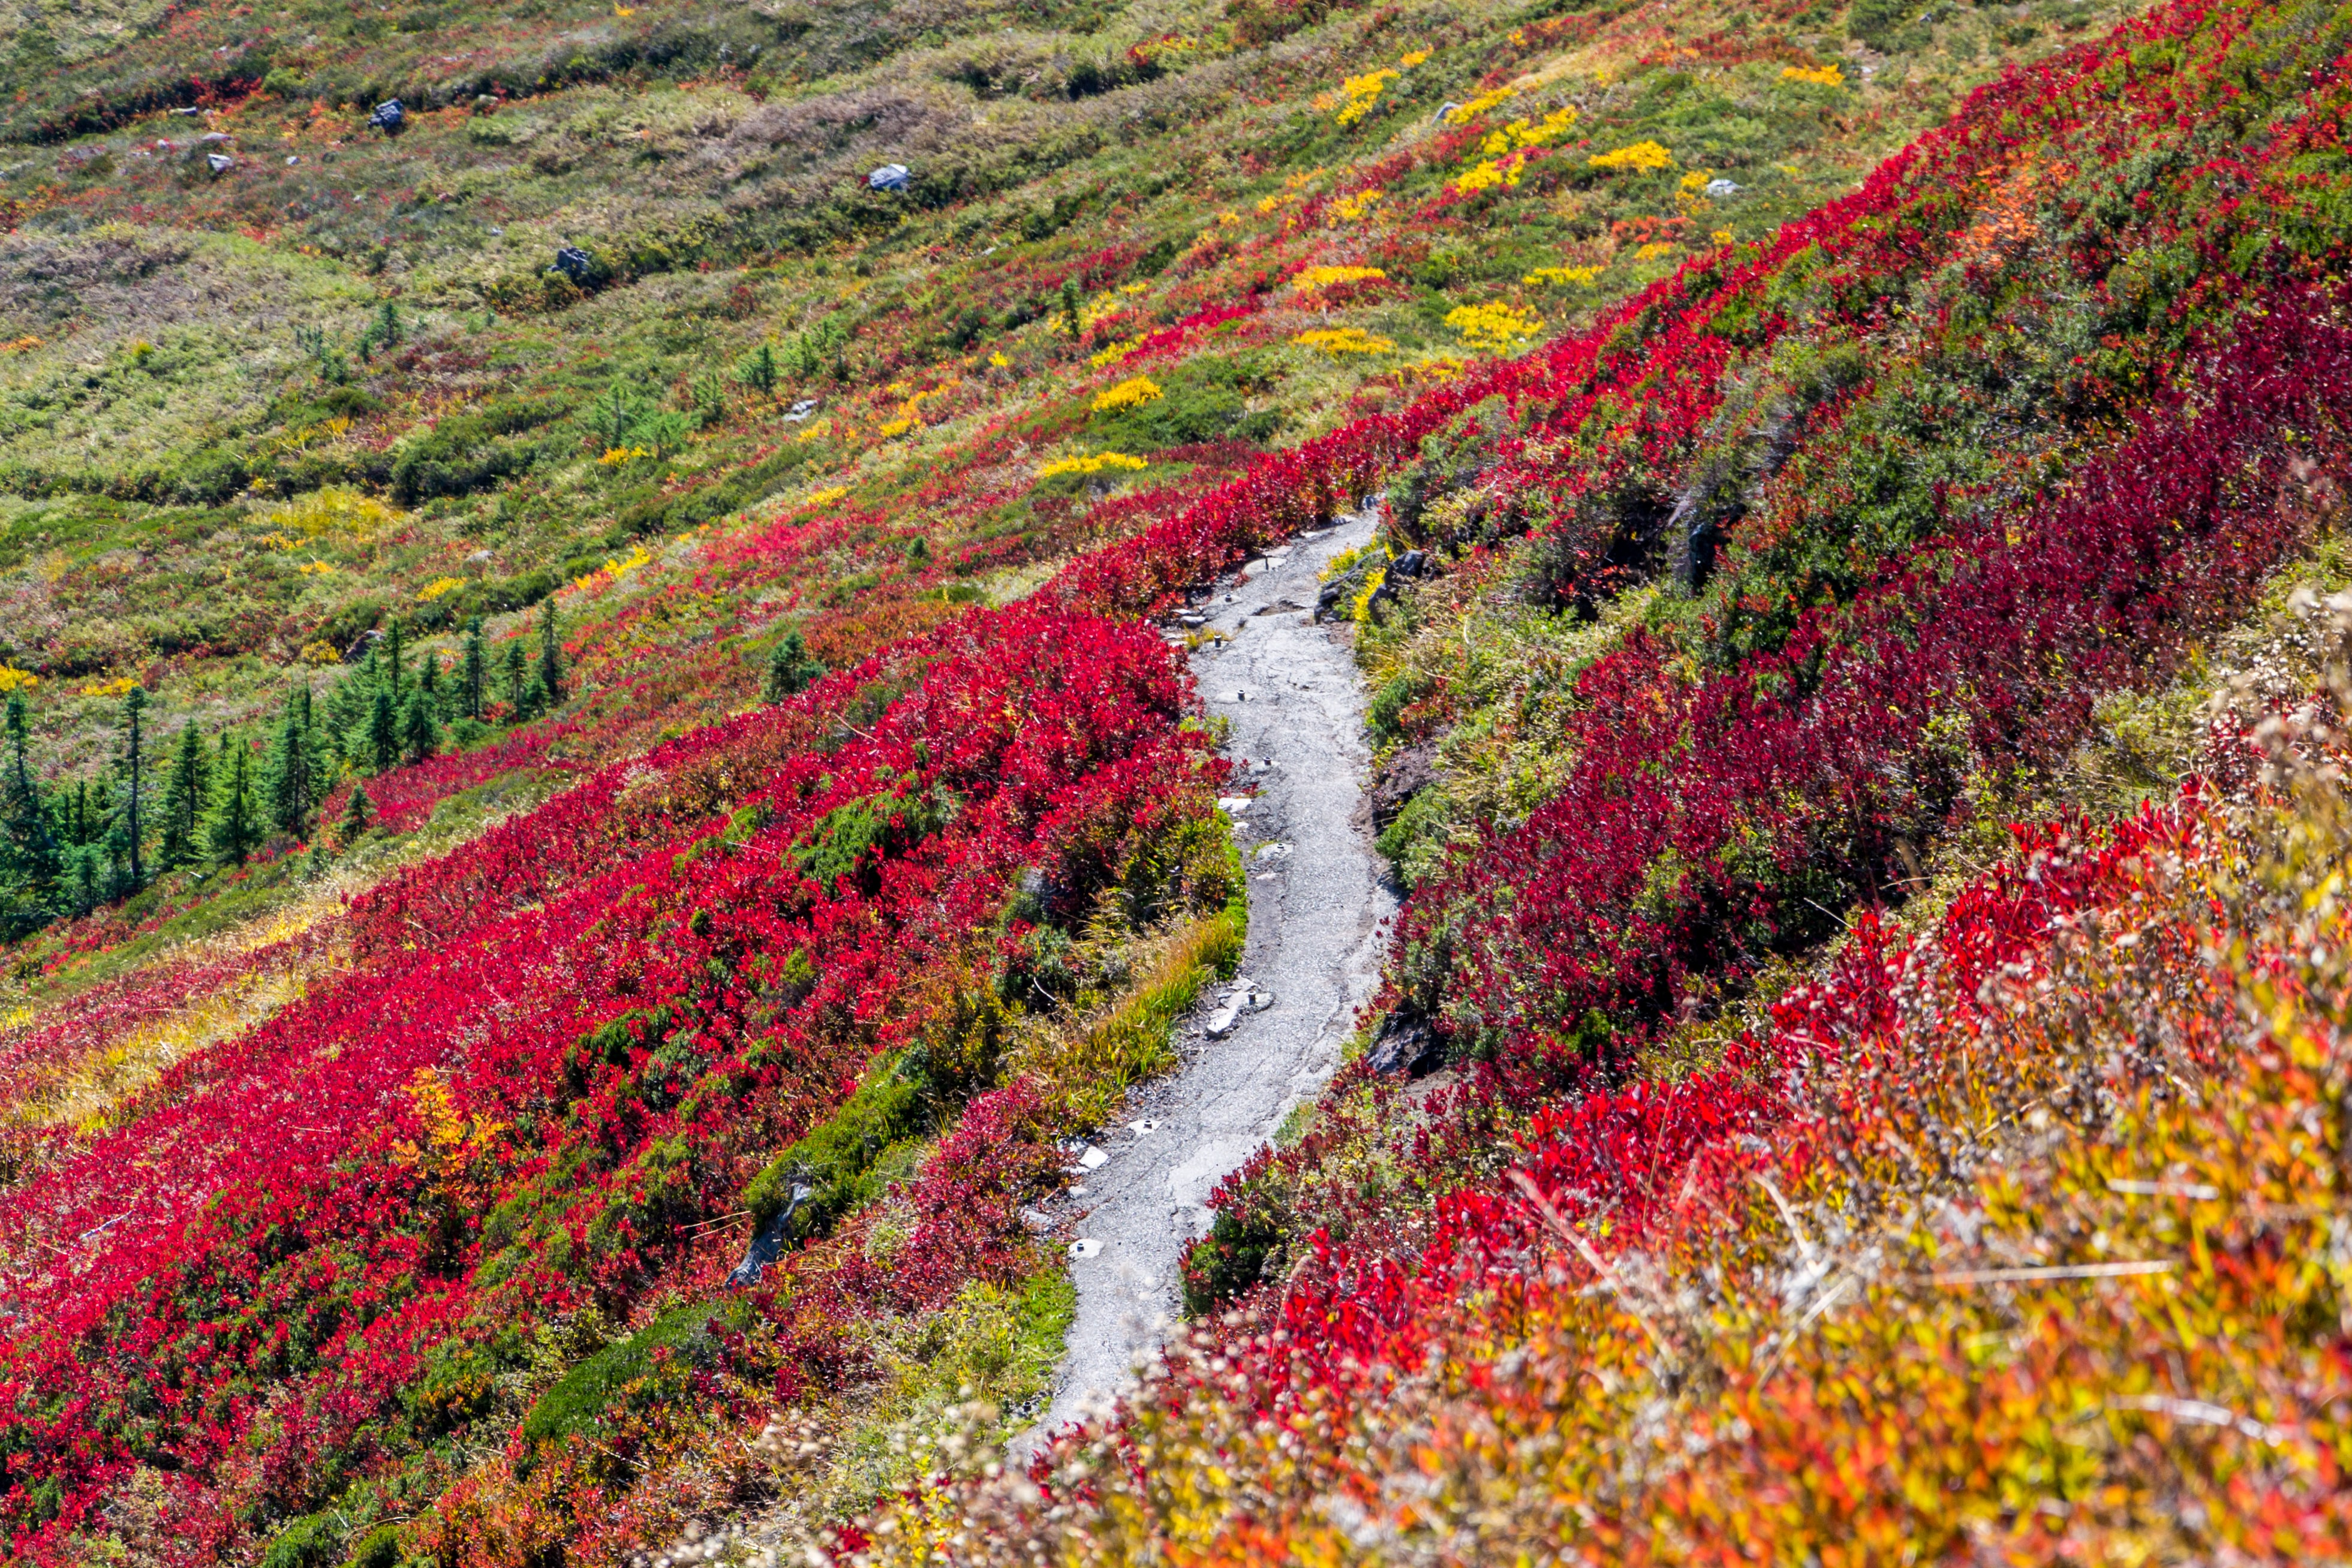 A meadow of colorful red and yellow flowers at Henry M. Jackson Visitor Center